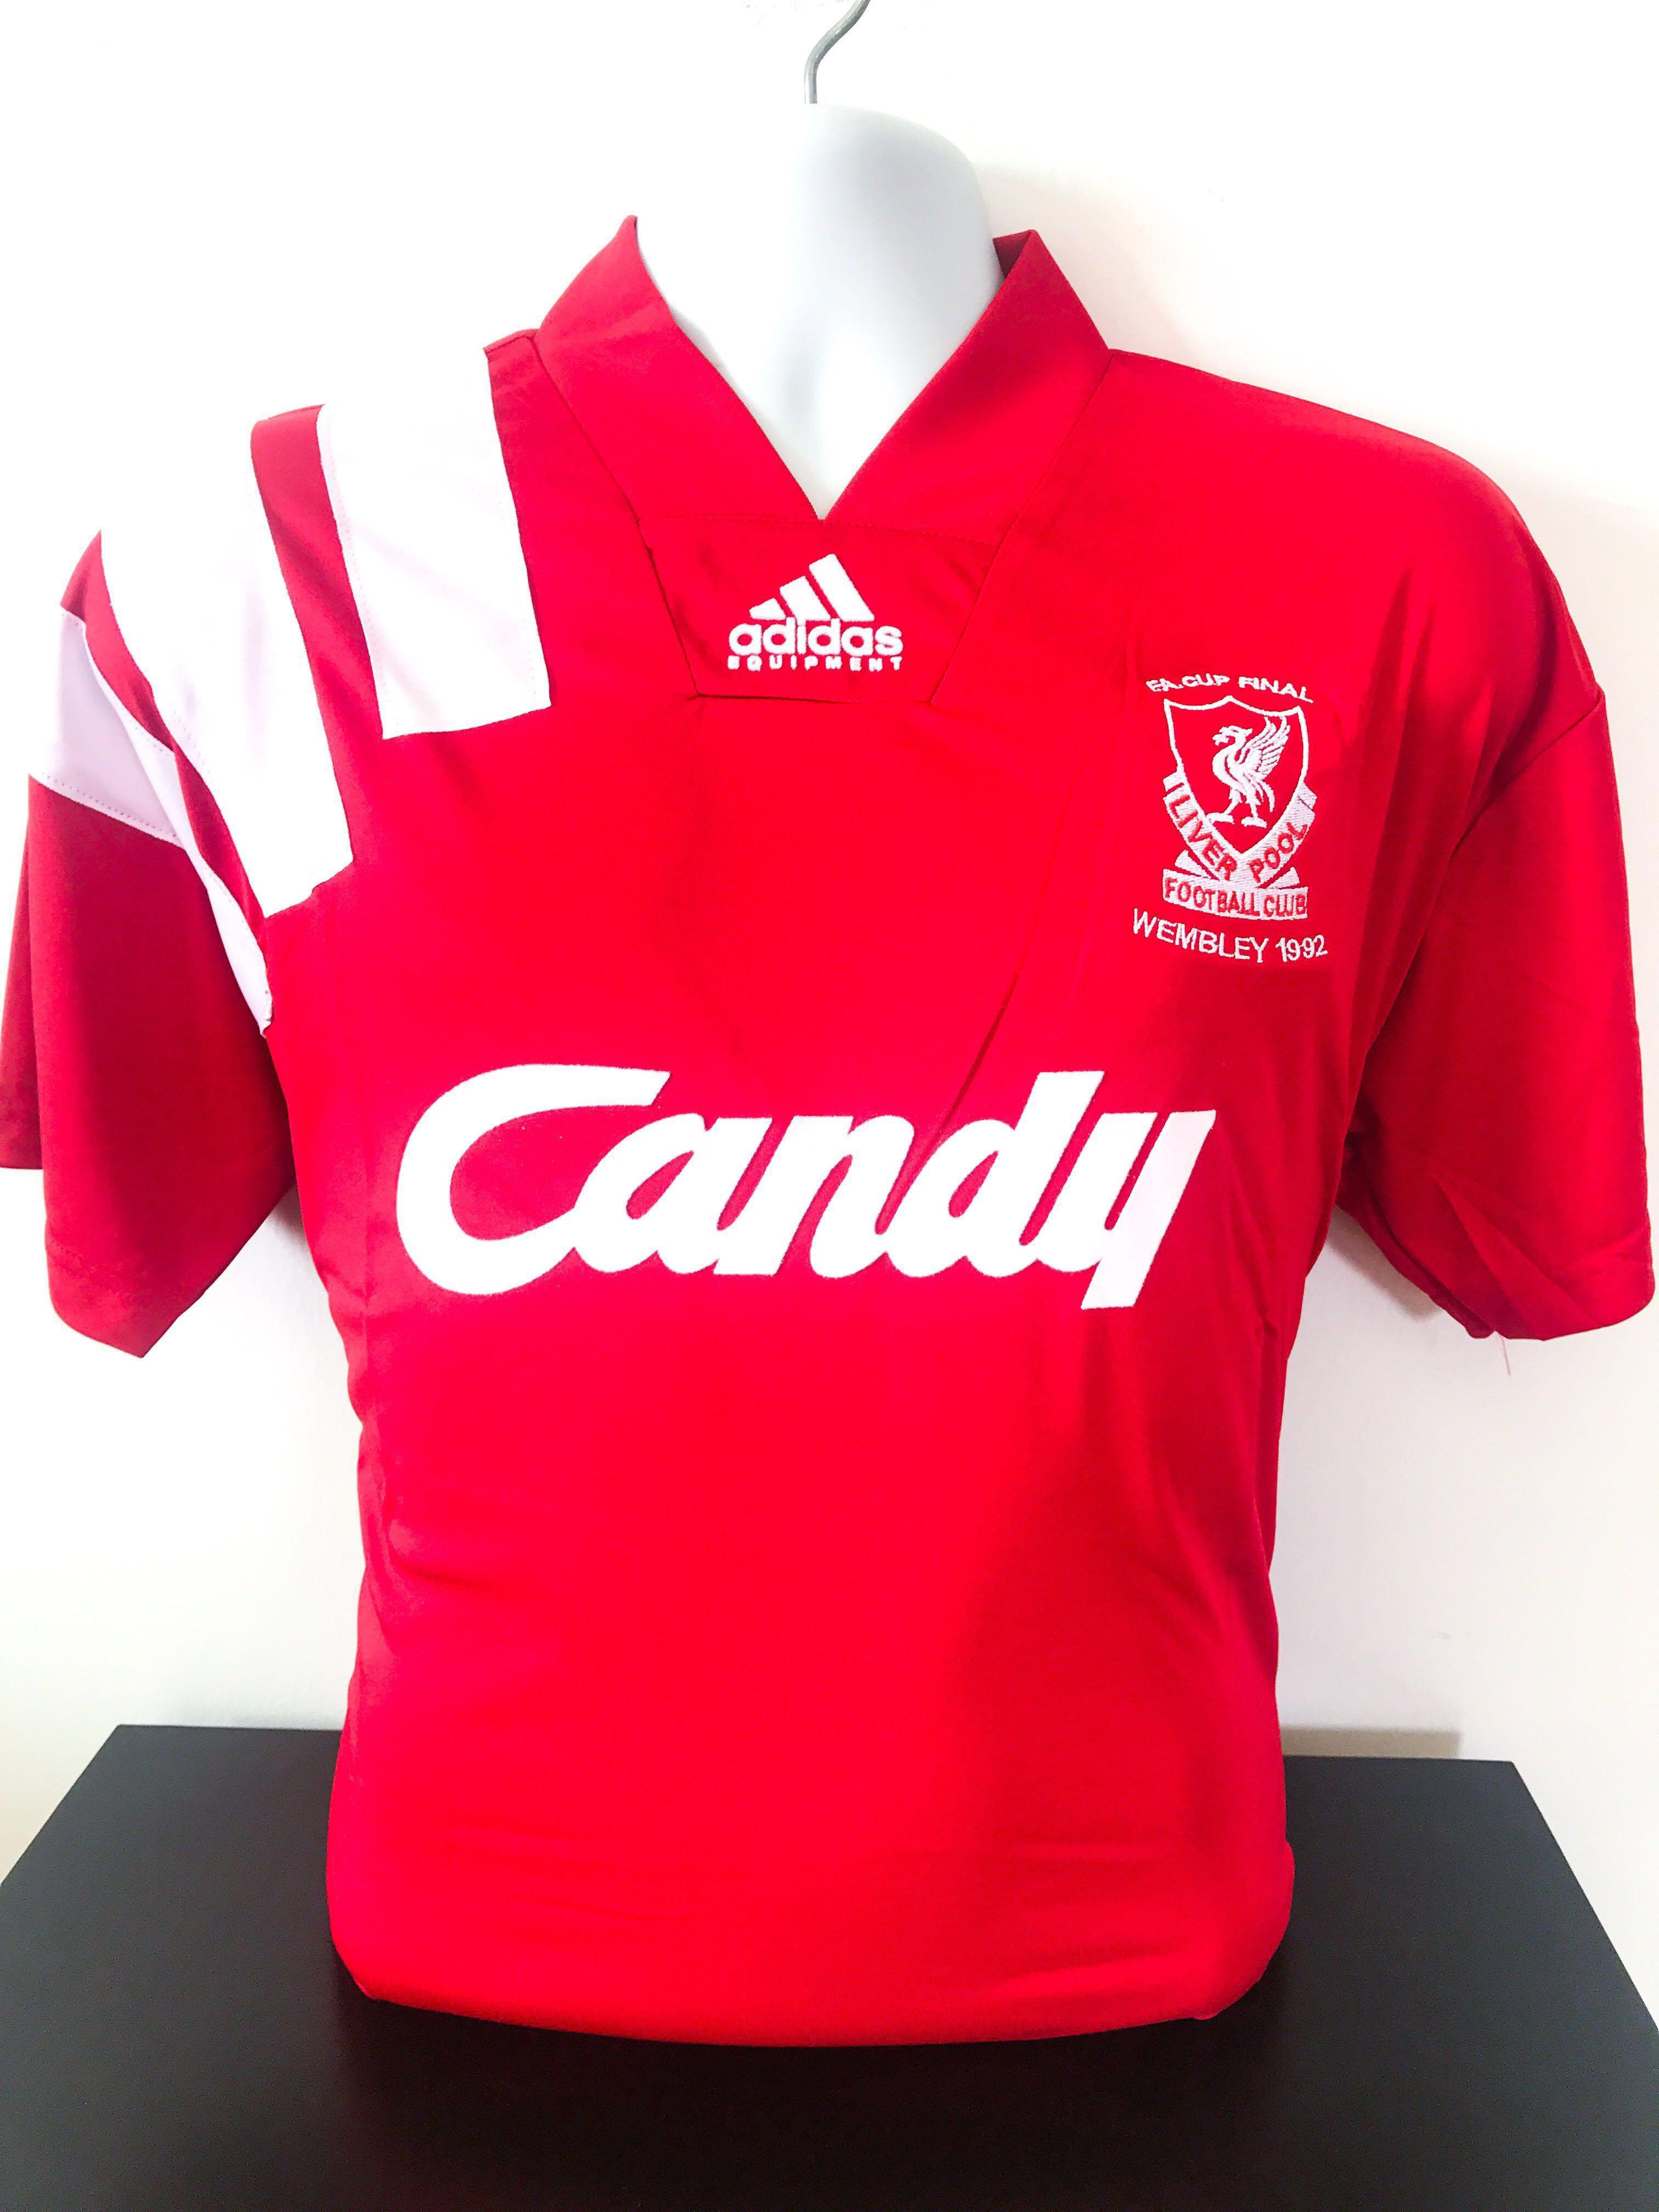 wholesale dealer 29b9e 8b4b9 🆕 Liverpool FC Retro F.A. Cup Final 1992 Home Jersey ...